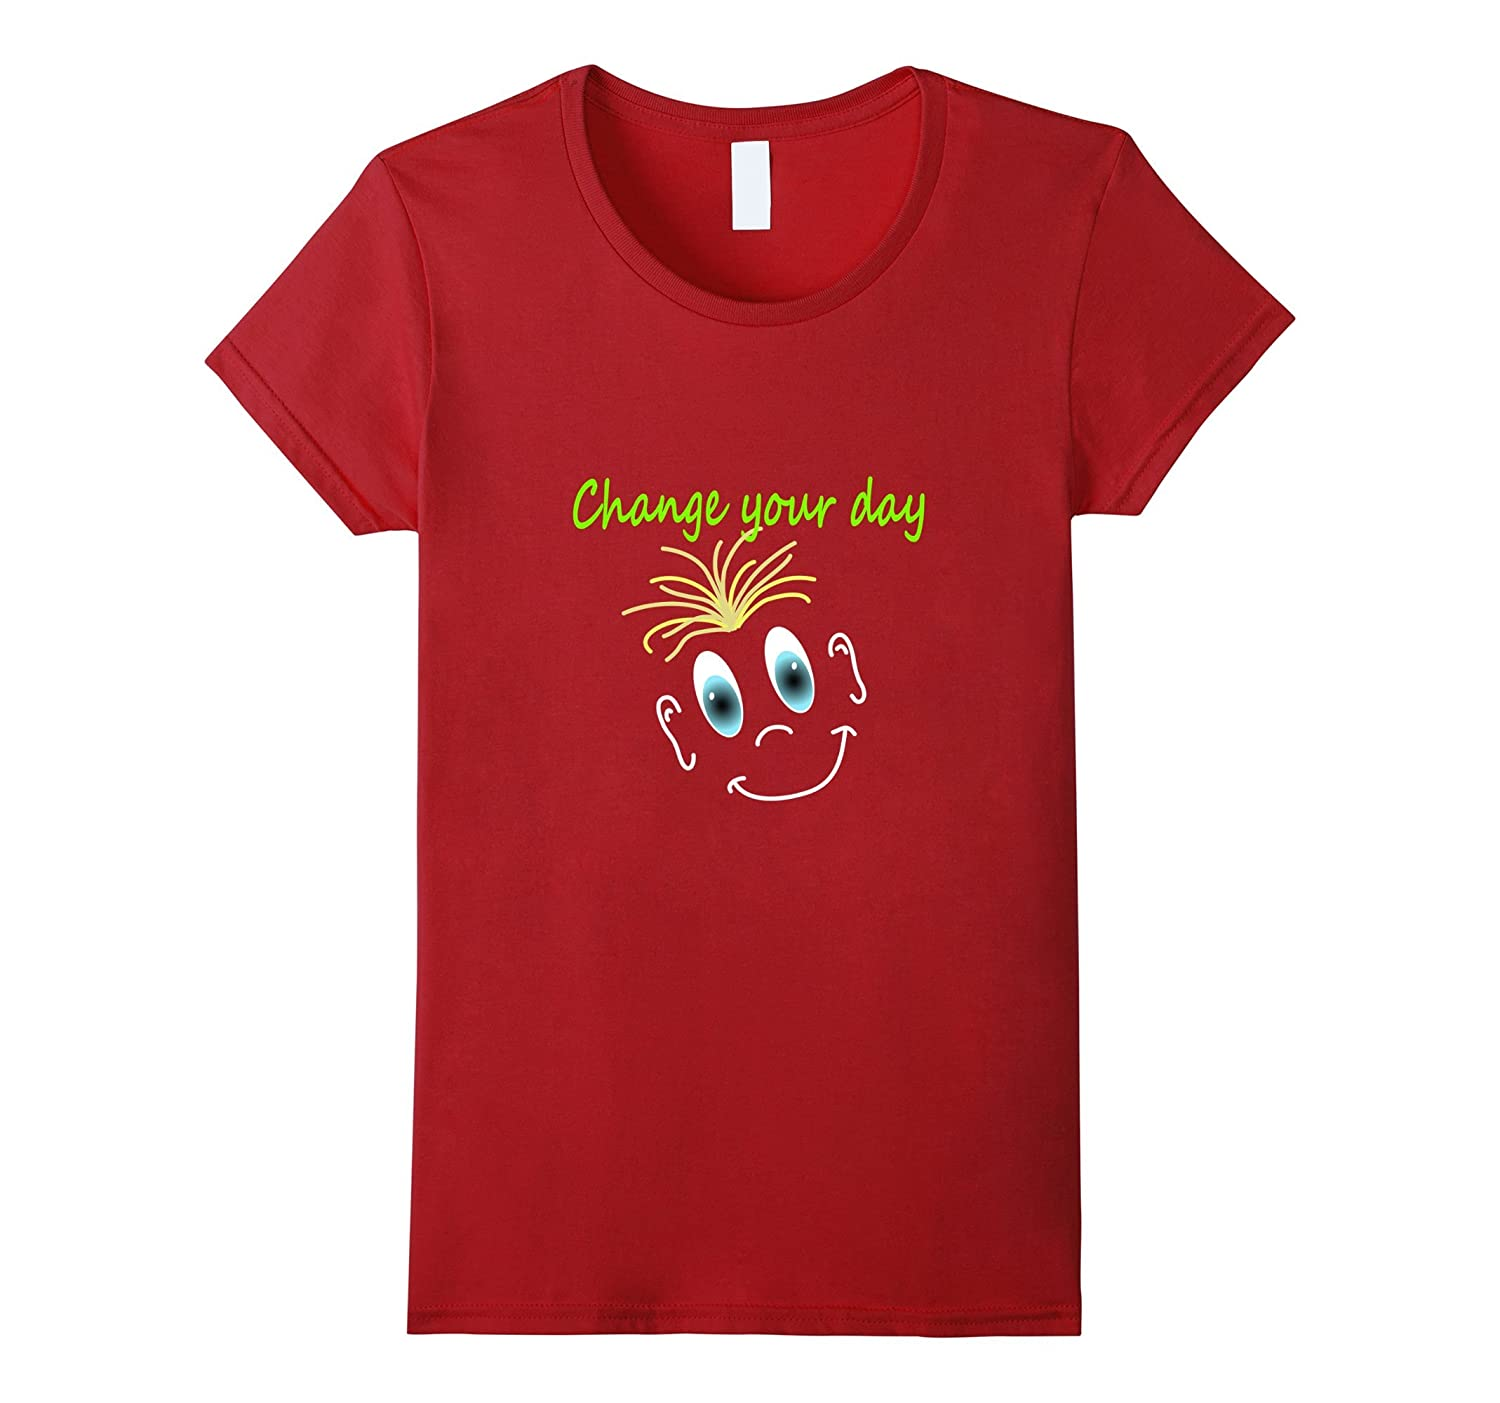 Change Your Day with a Smile - dark colored t-shirt-4LVS